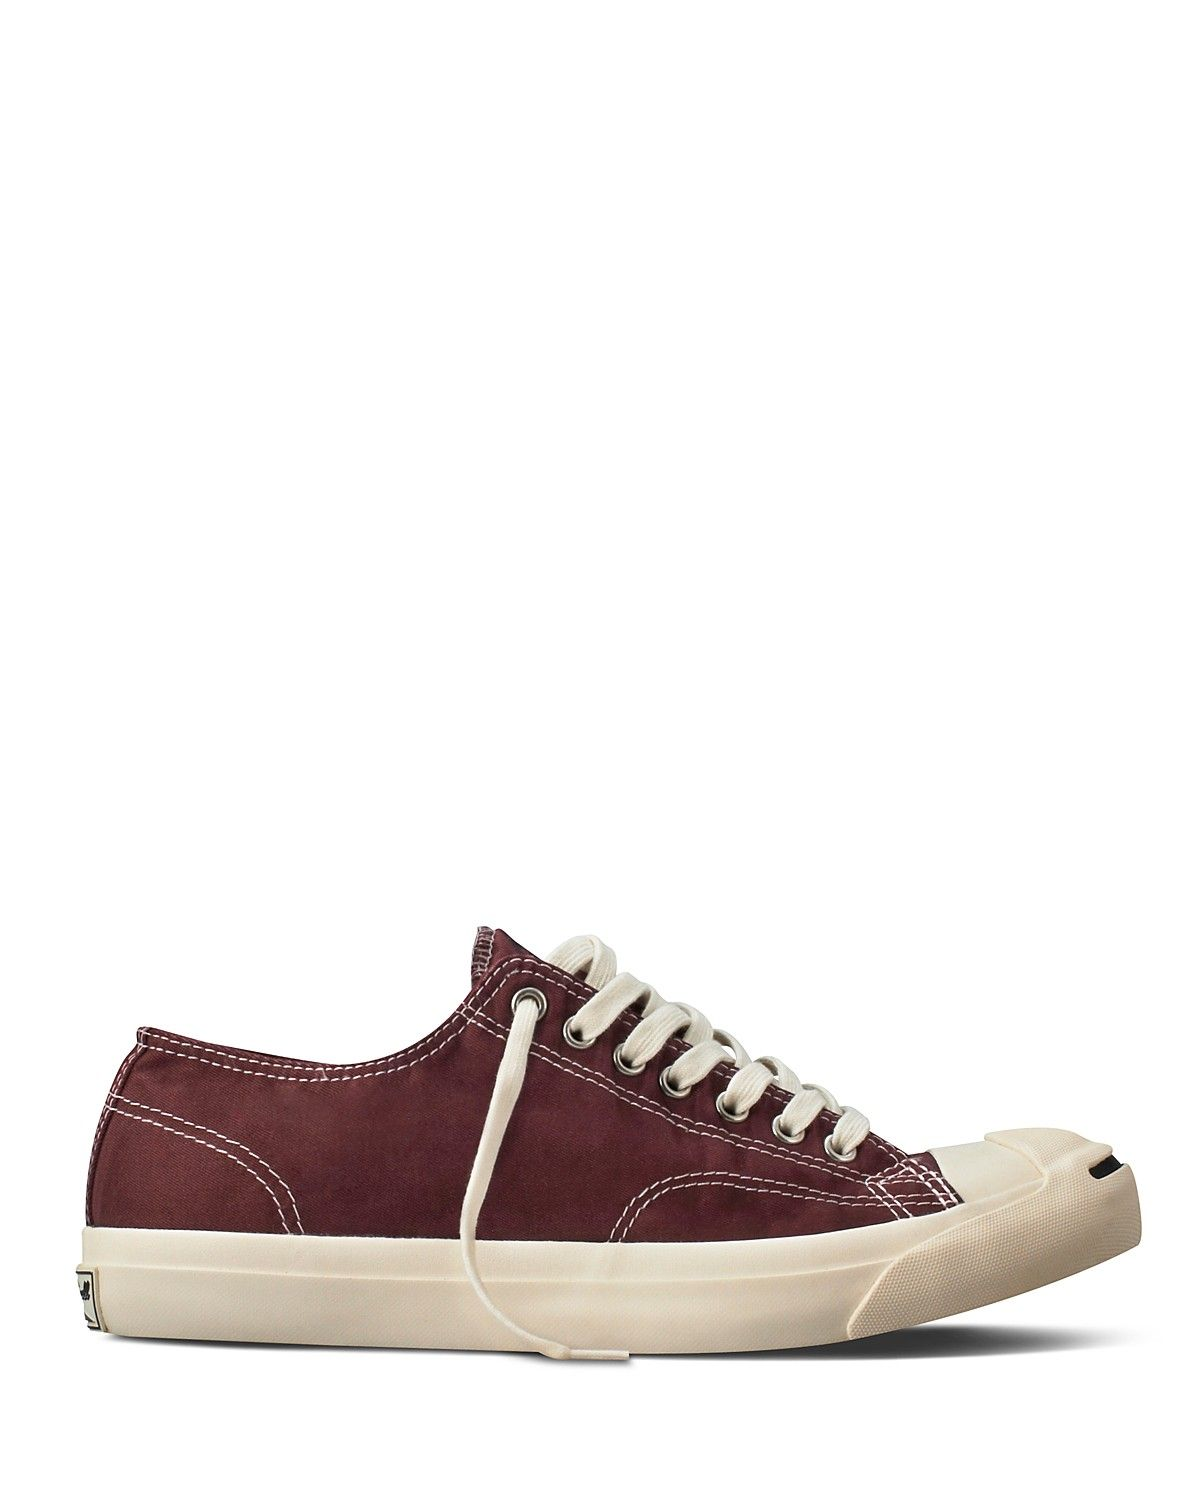 Converse Jack Purcell LP II Sneakers in BrownOff White